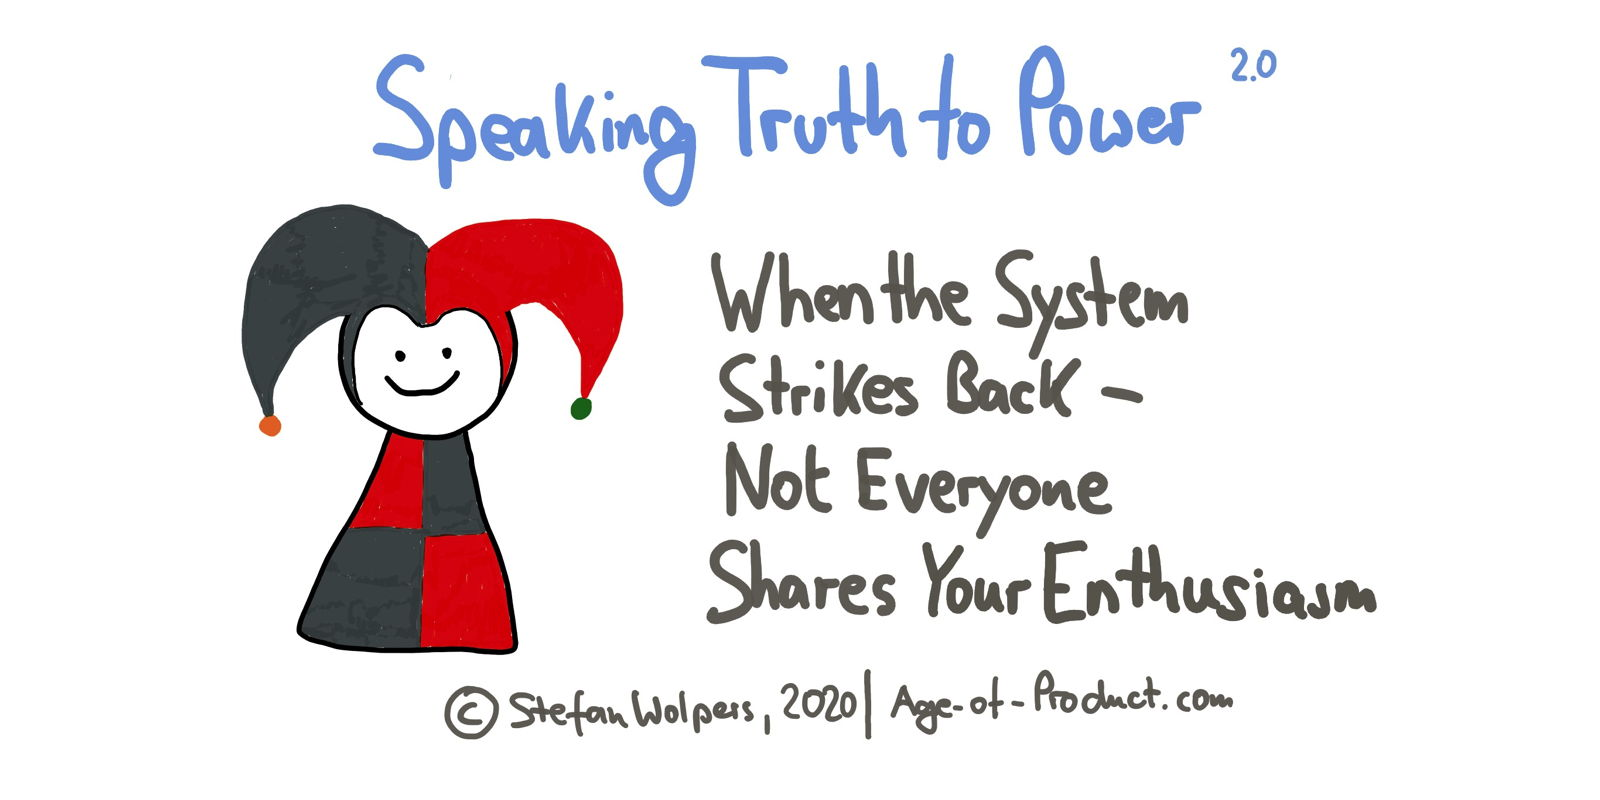 Speaking Truth to Power 2.0 — Taking A Stand as an Agile Practitioner